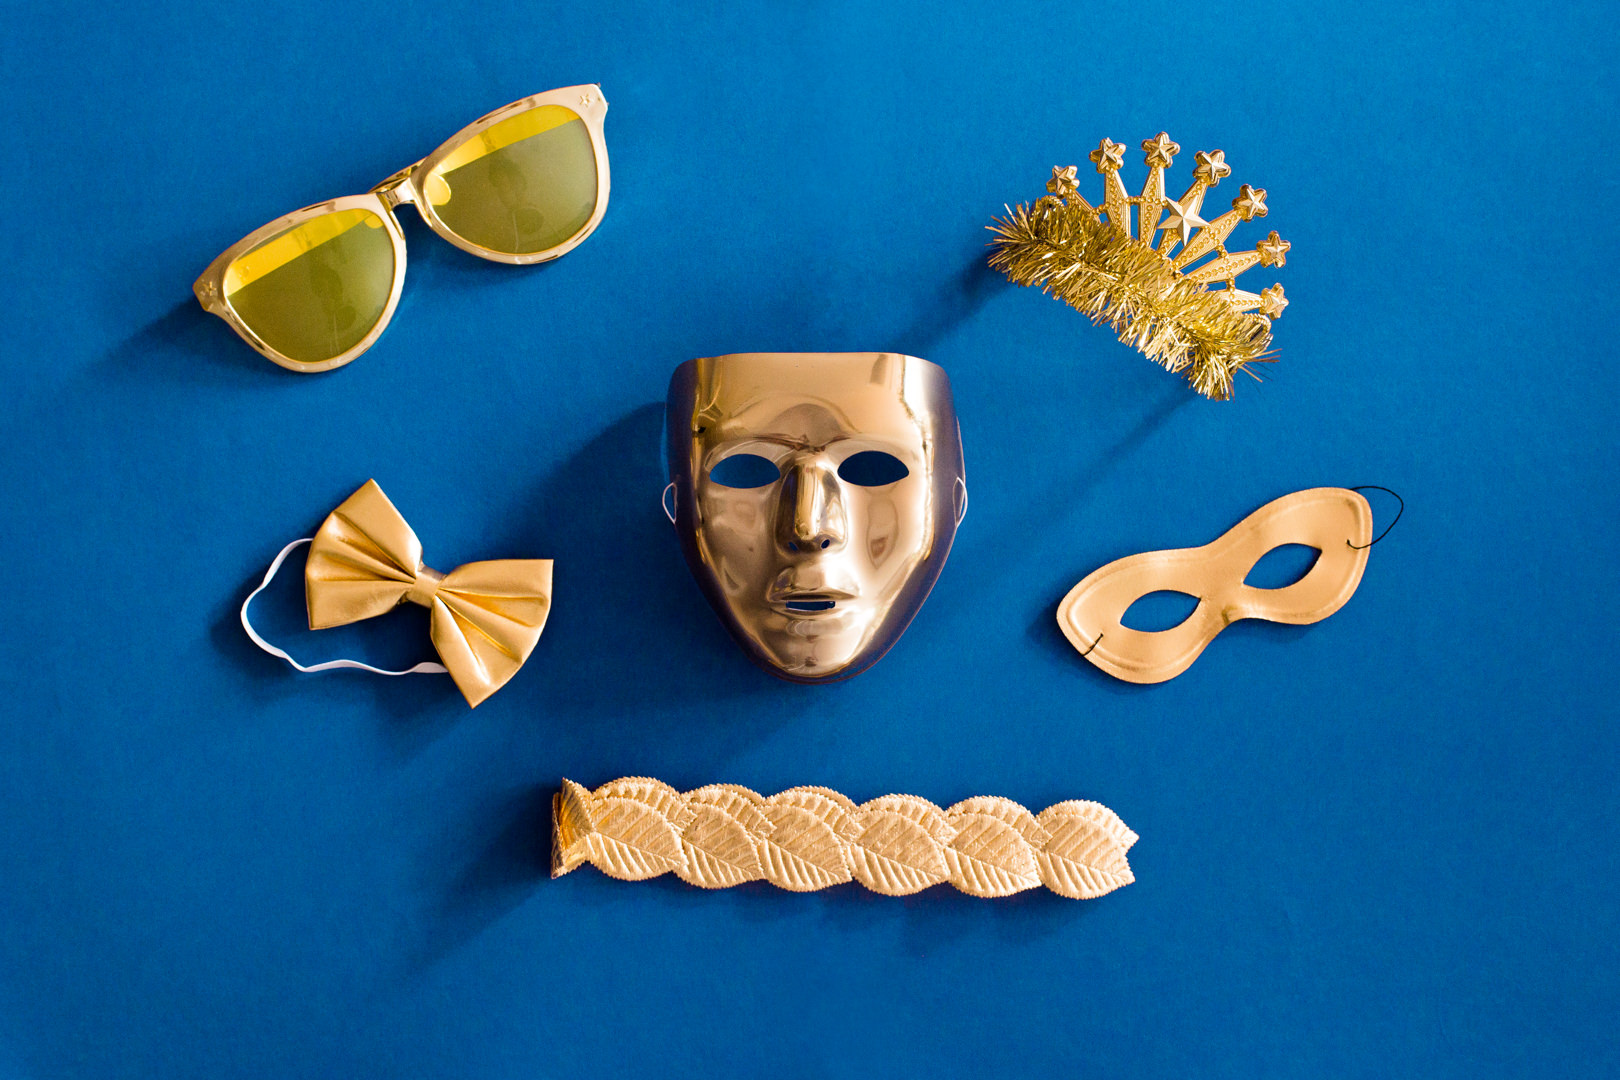 GOLD PROP KIT - Keep your heels, head & standards high ... or just wear Gold!*Subject to availability